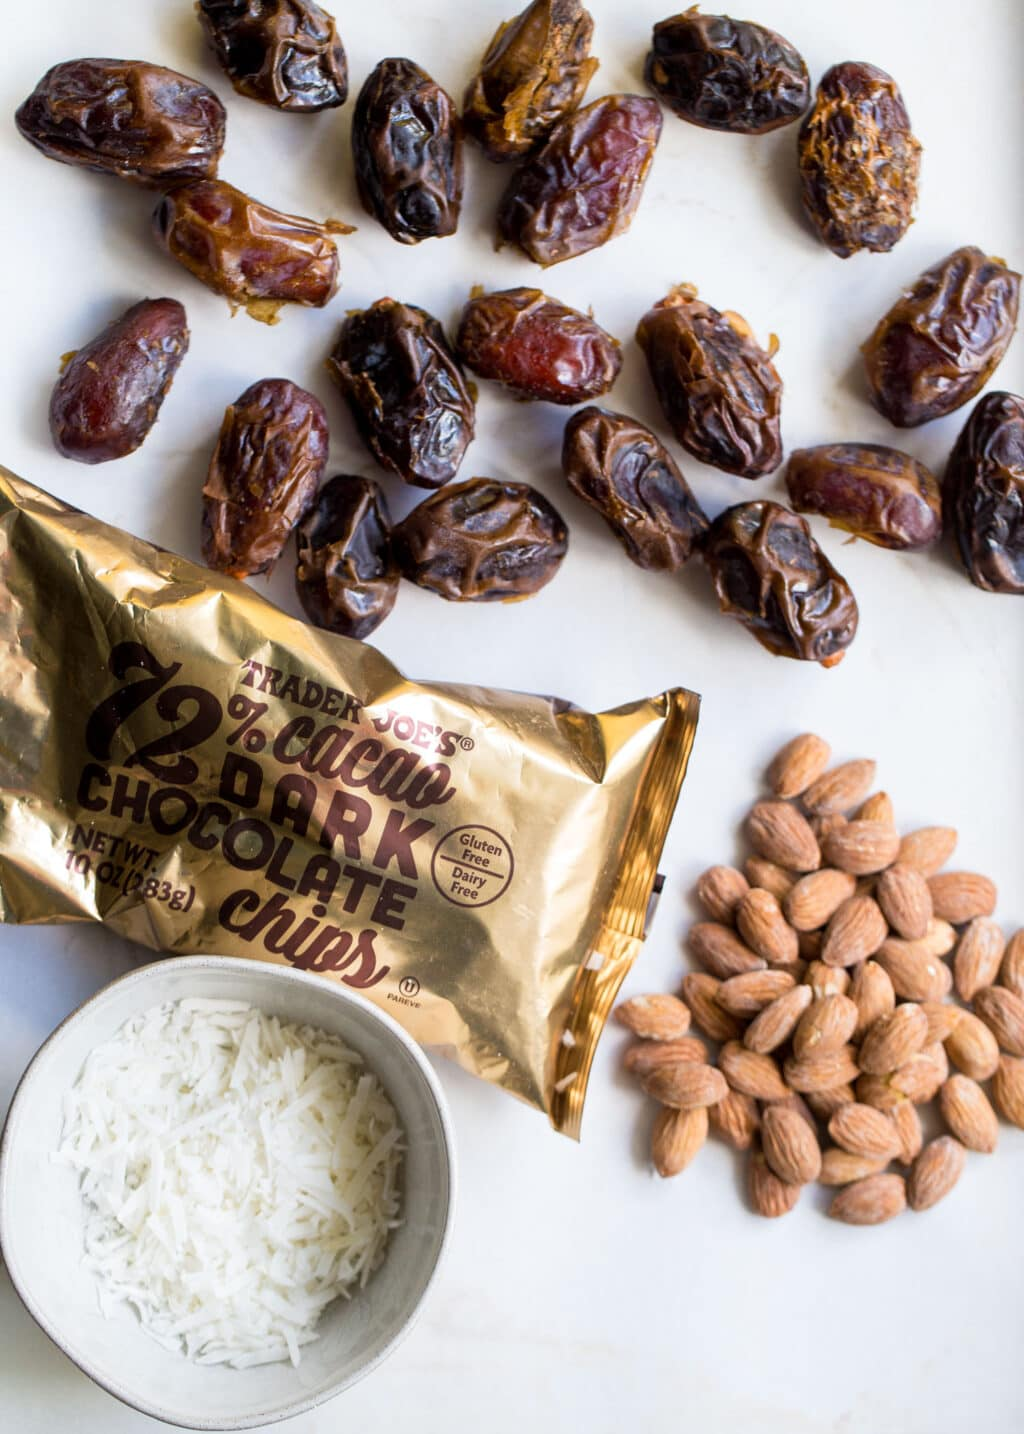 Dates, almonds, chocolate chips, and coconut flakes on a white background.